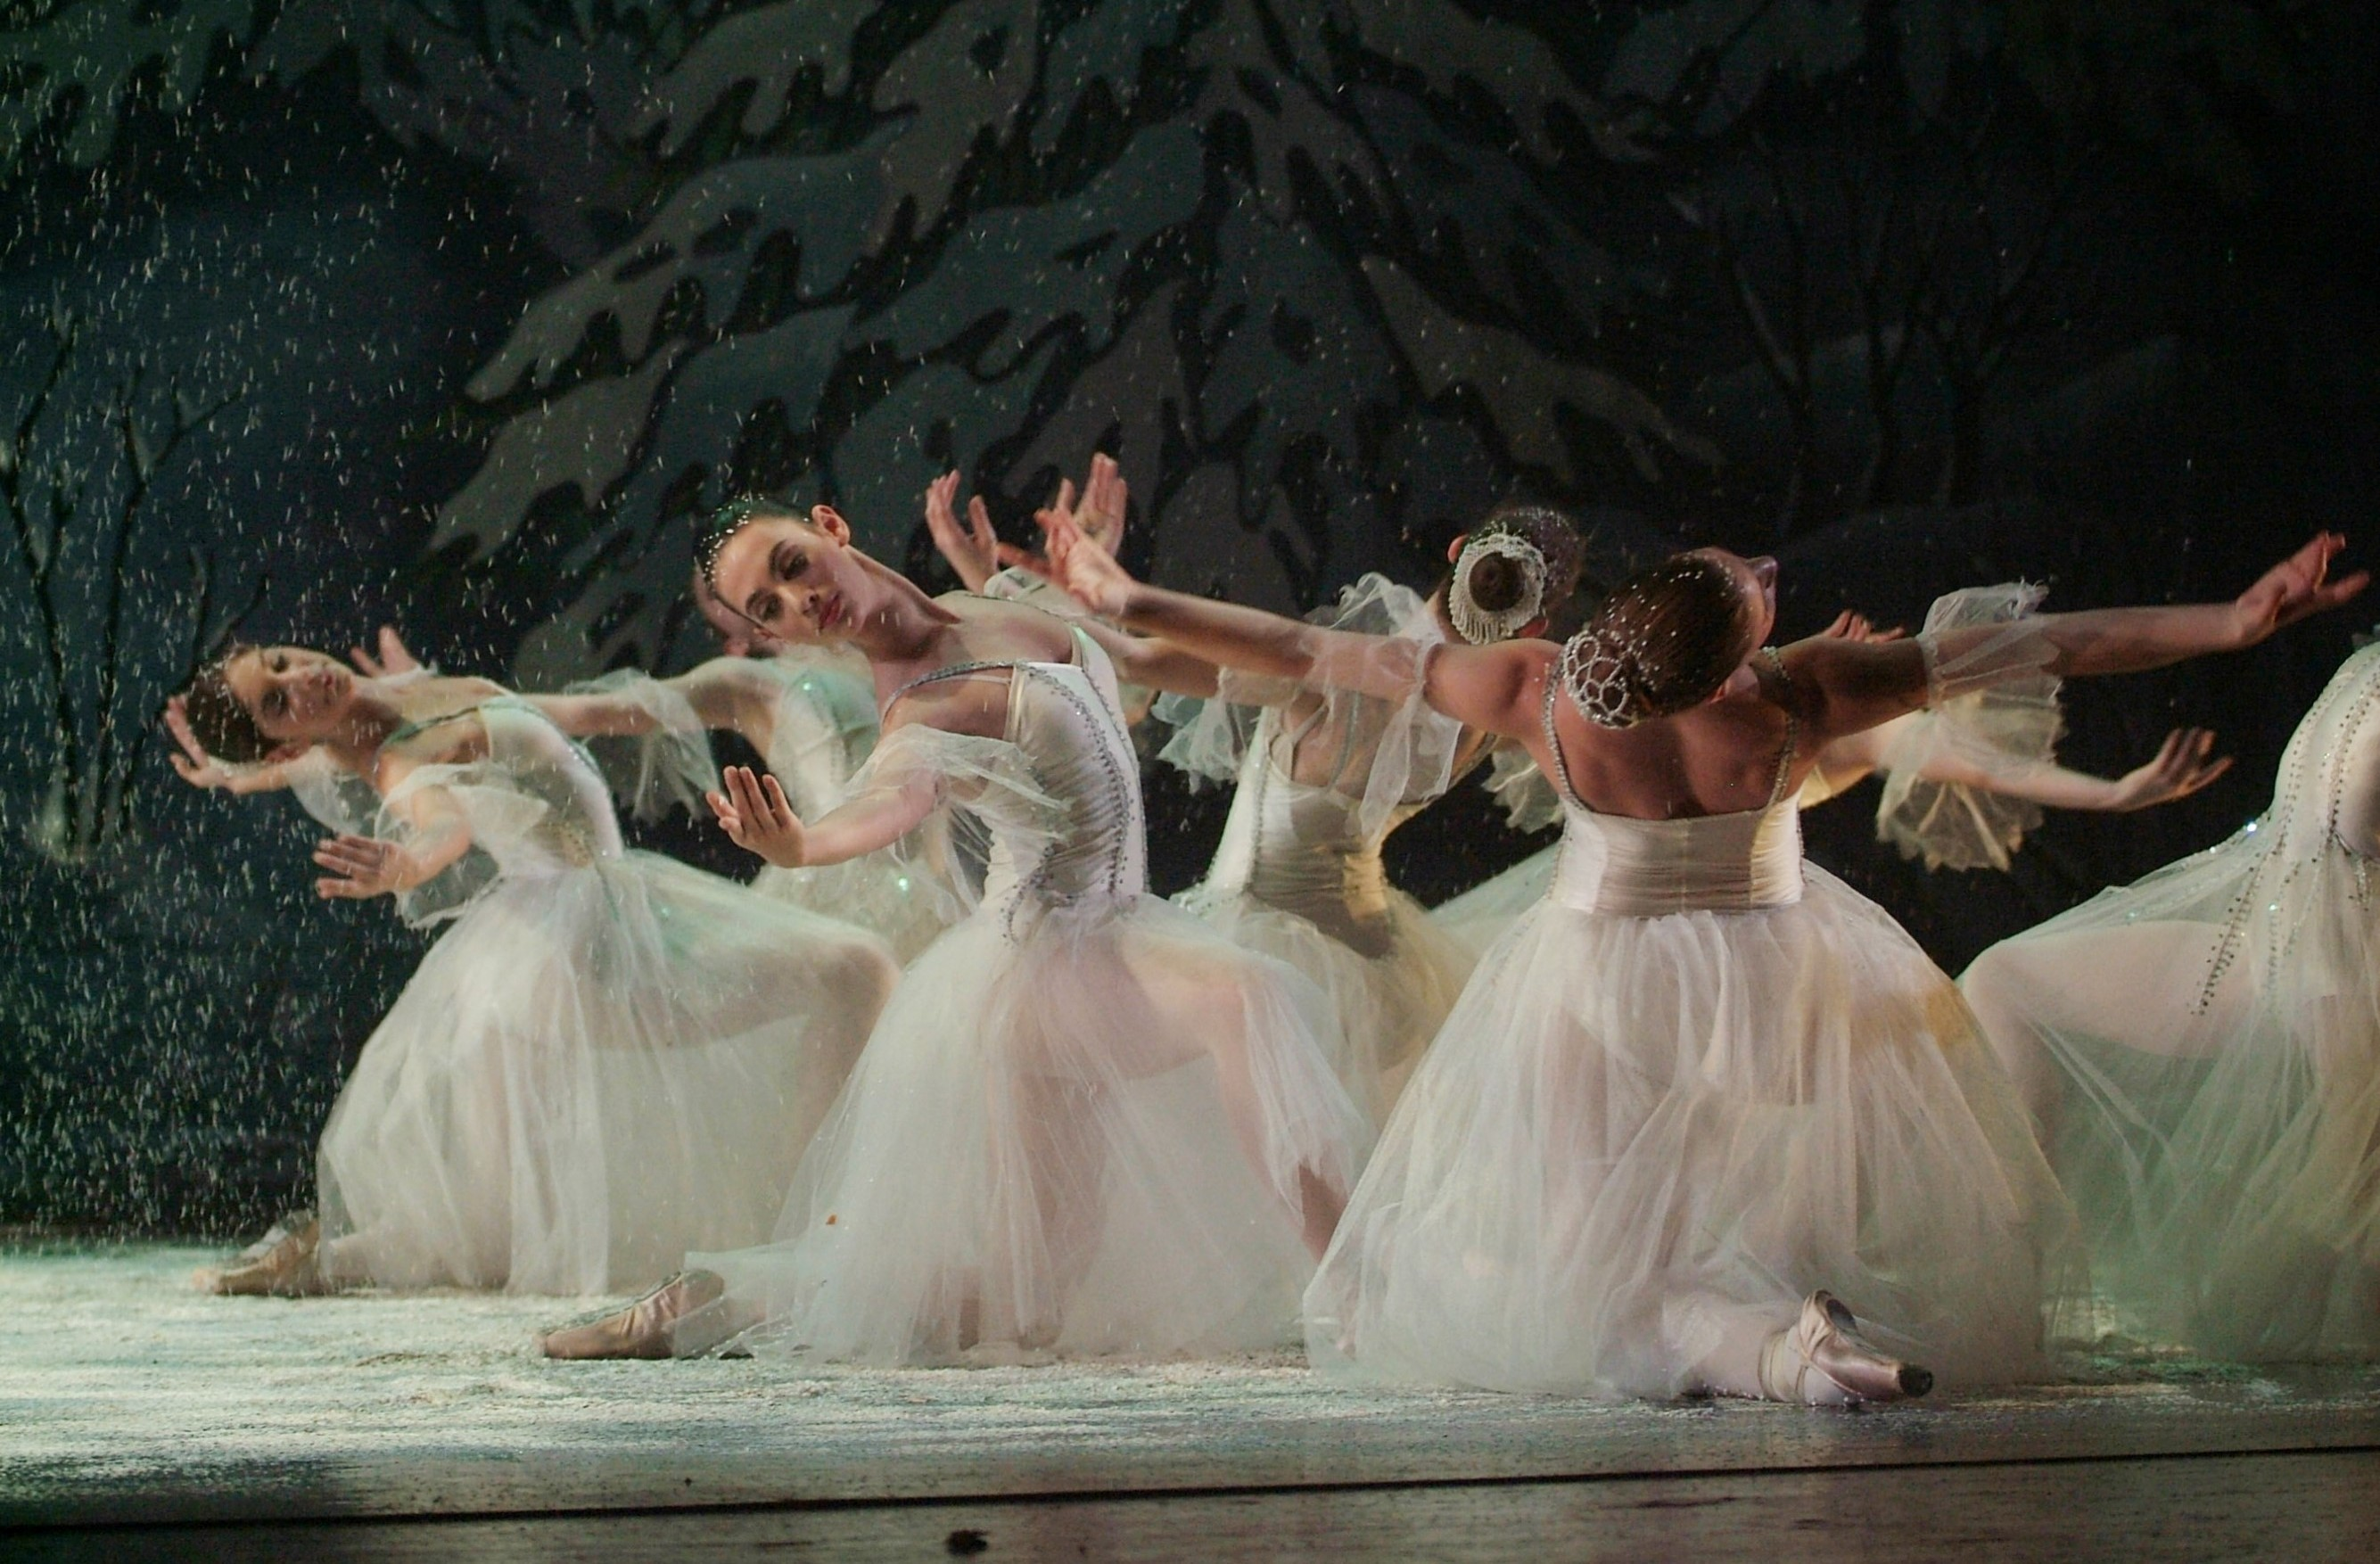 The Nutcracker performed by The Israel Ballet is another reason to get the family together